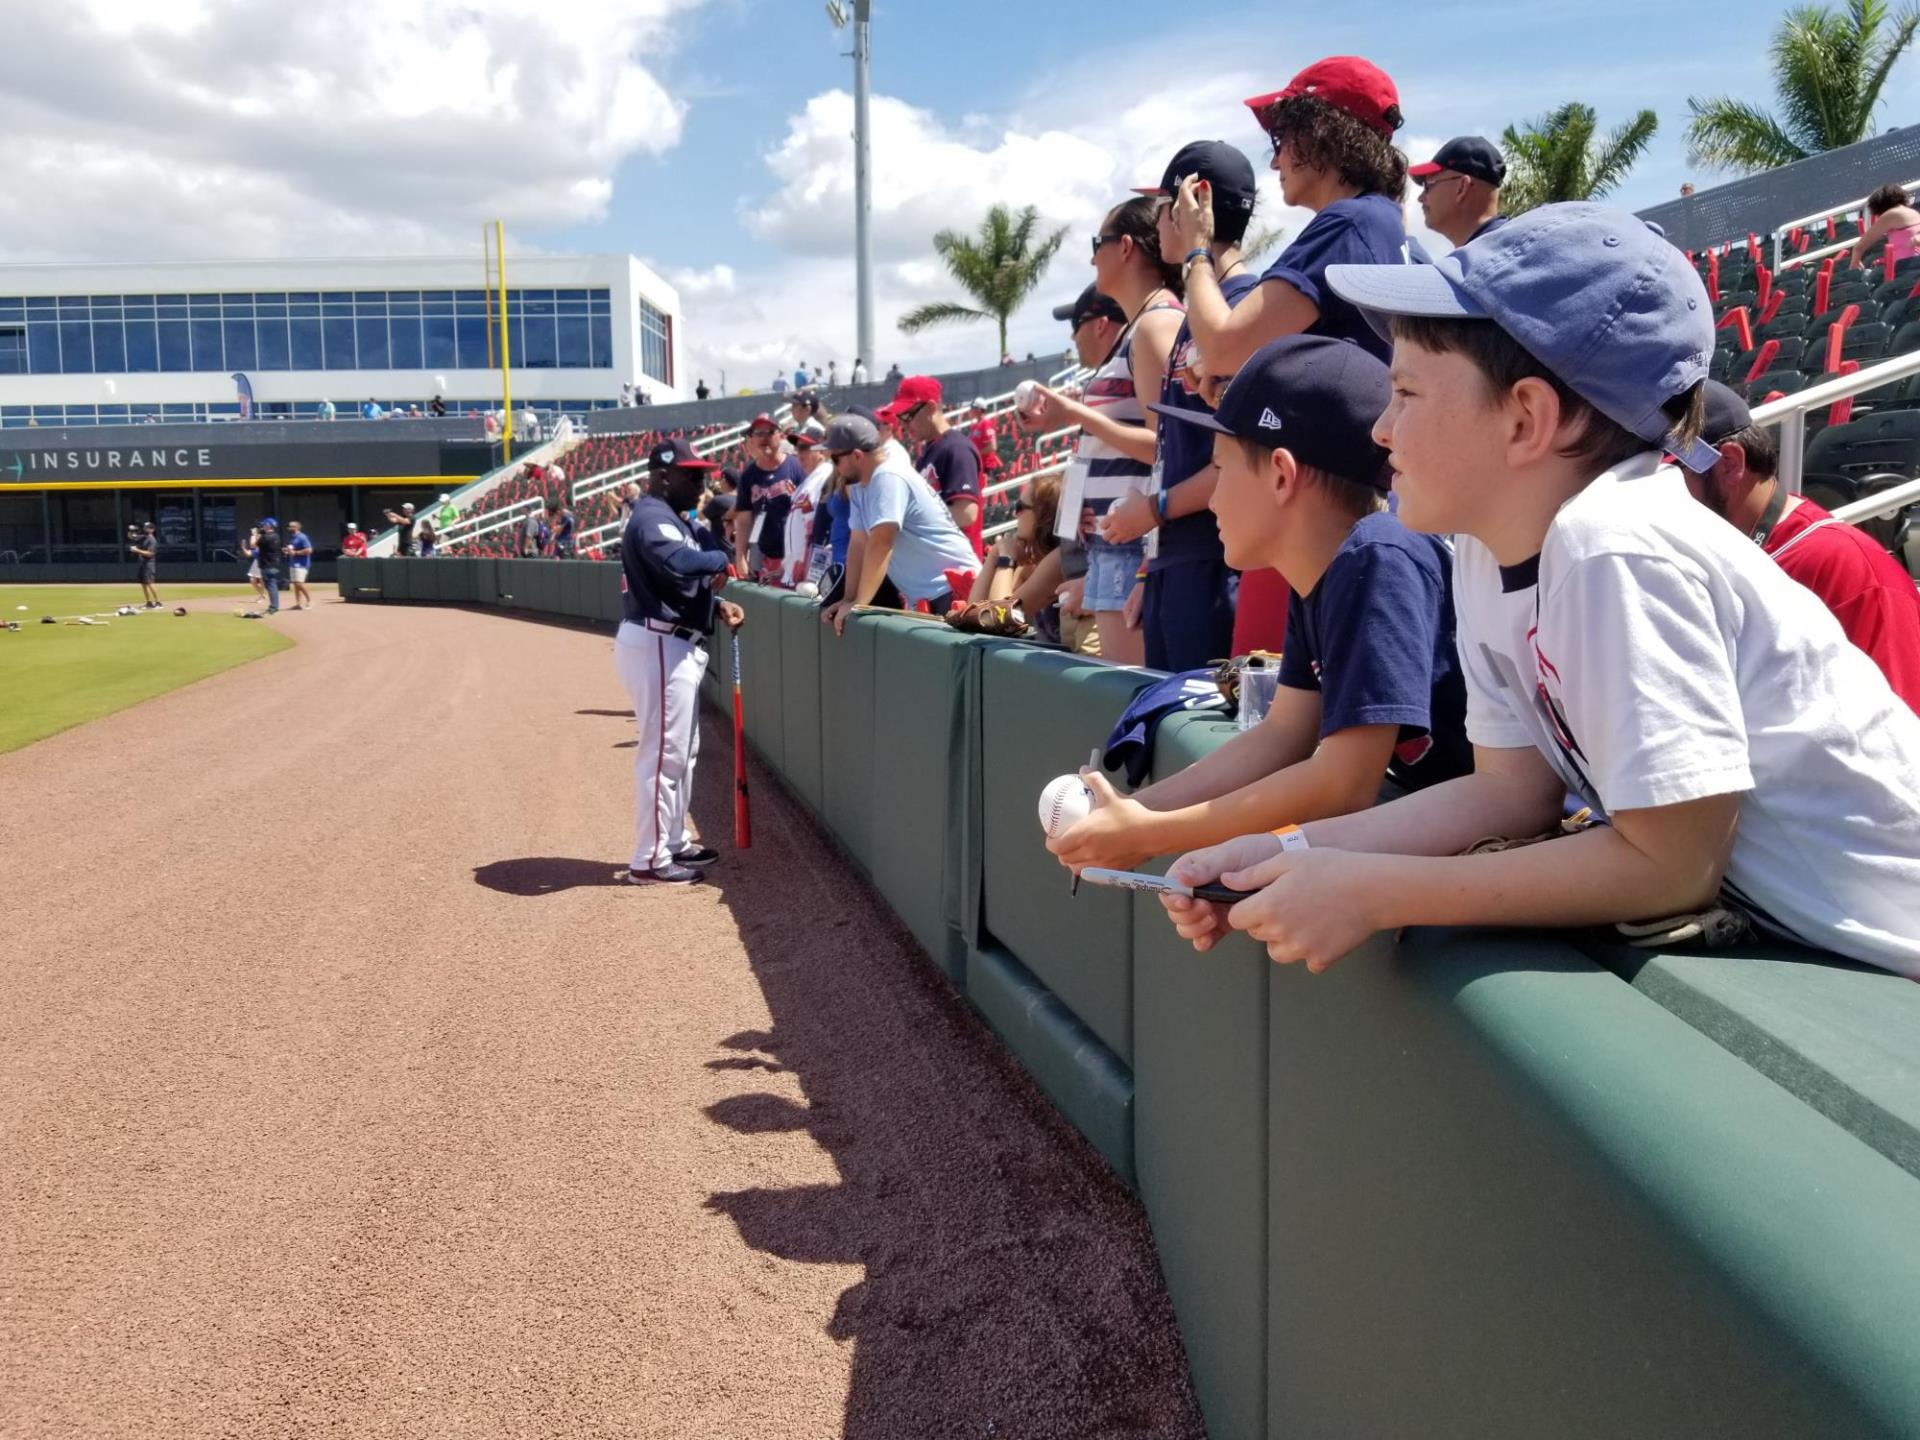 Baseball fans of all ages line up along first base line in hopes of getting major league signatures before the Braves first game in their new spring training facility in Sarasota County.